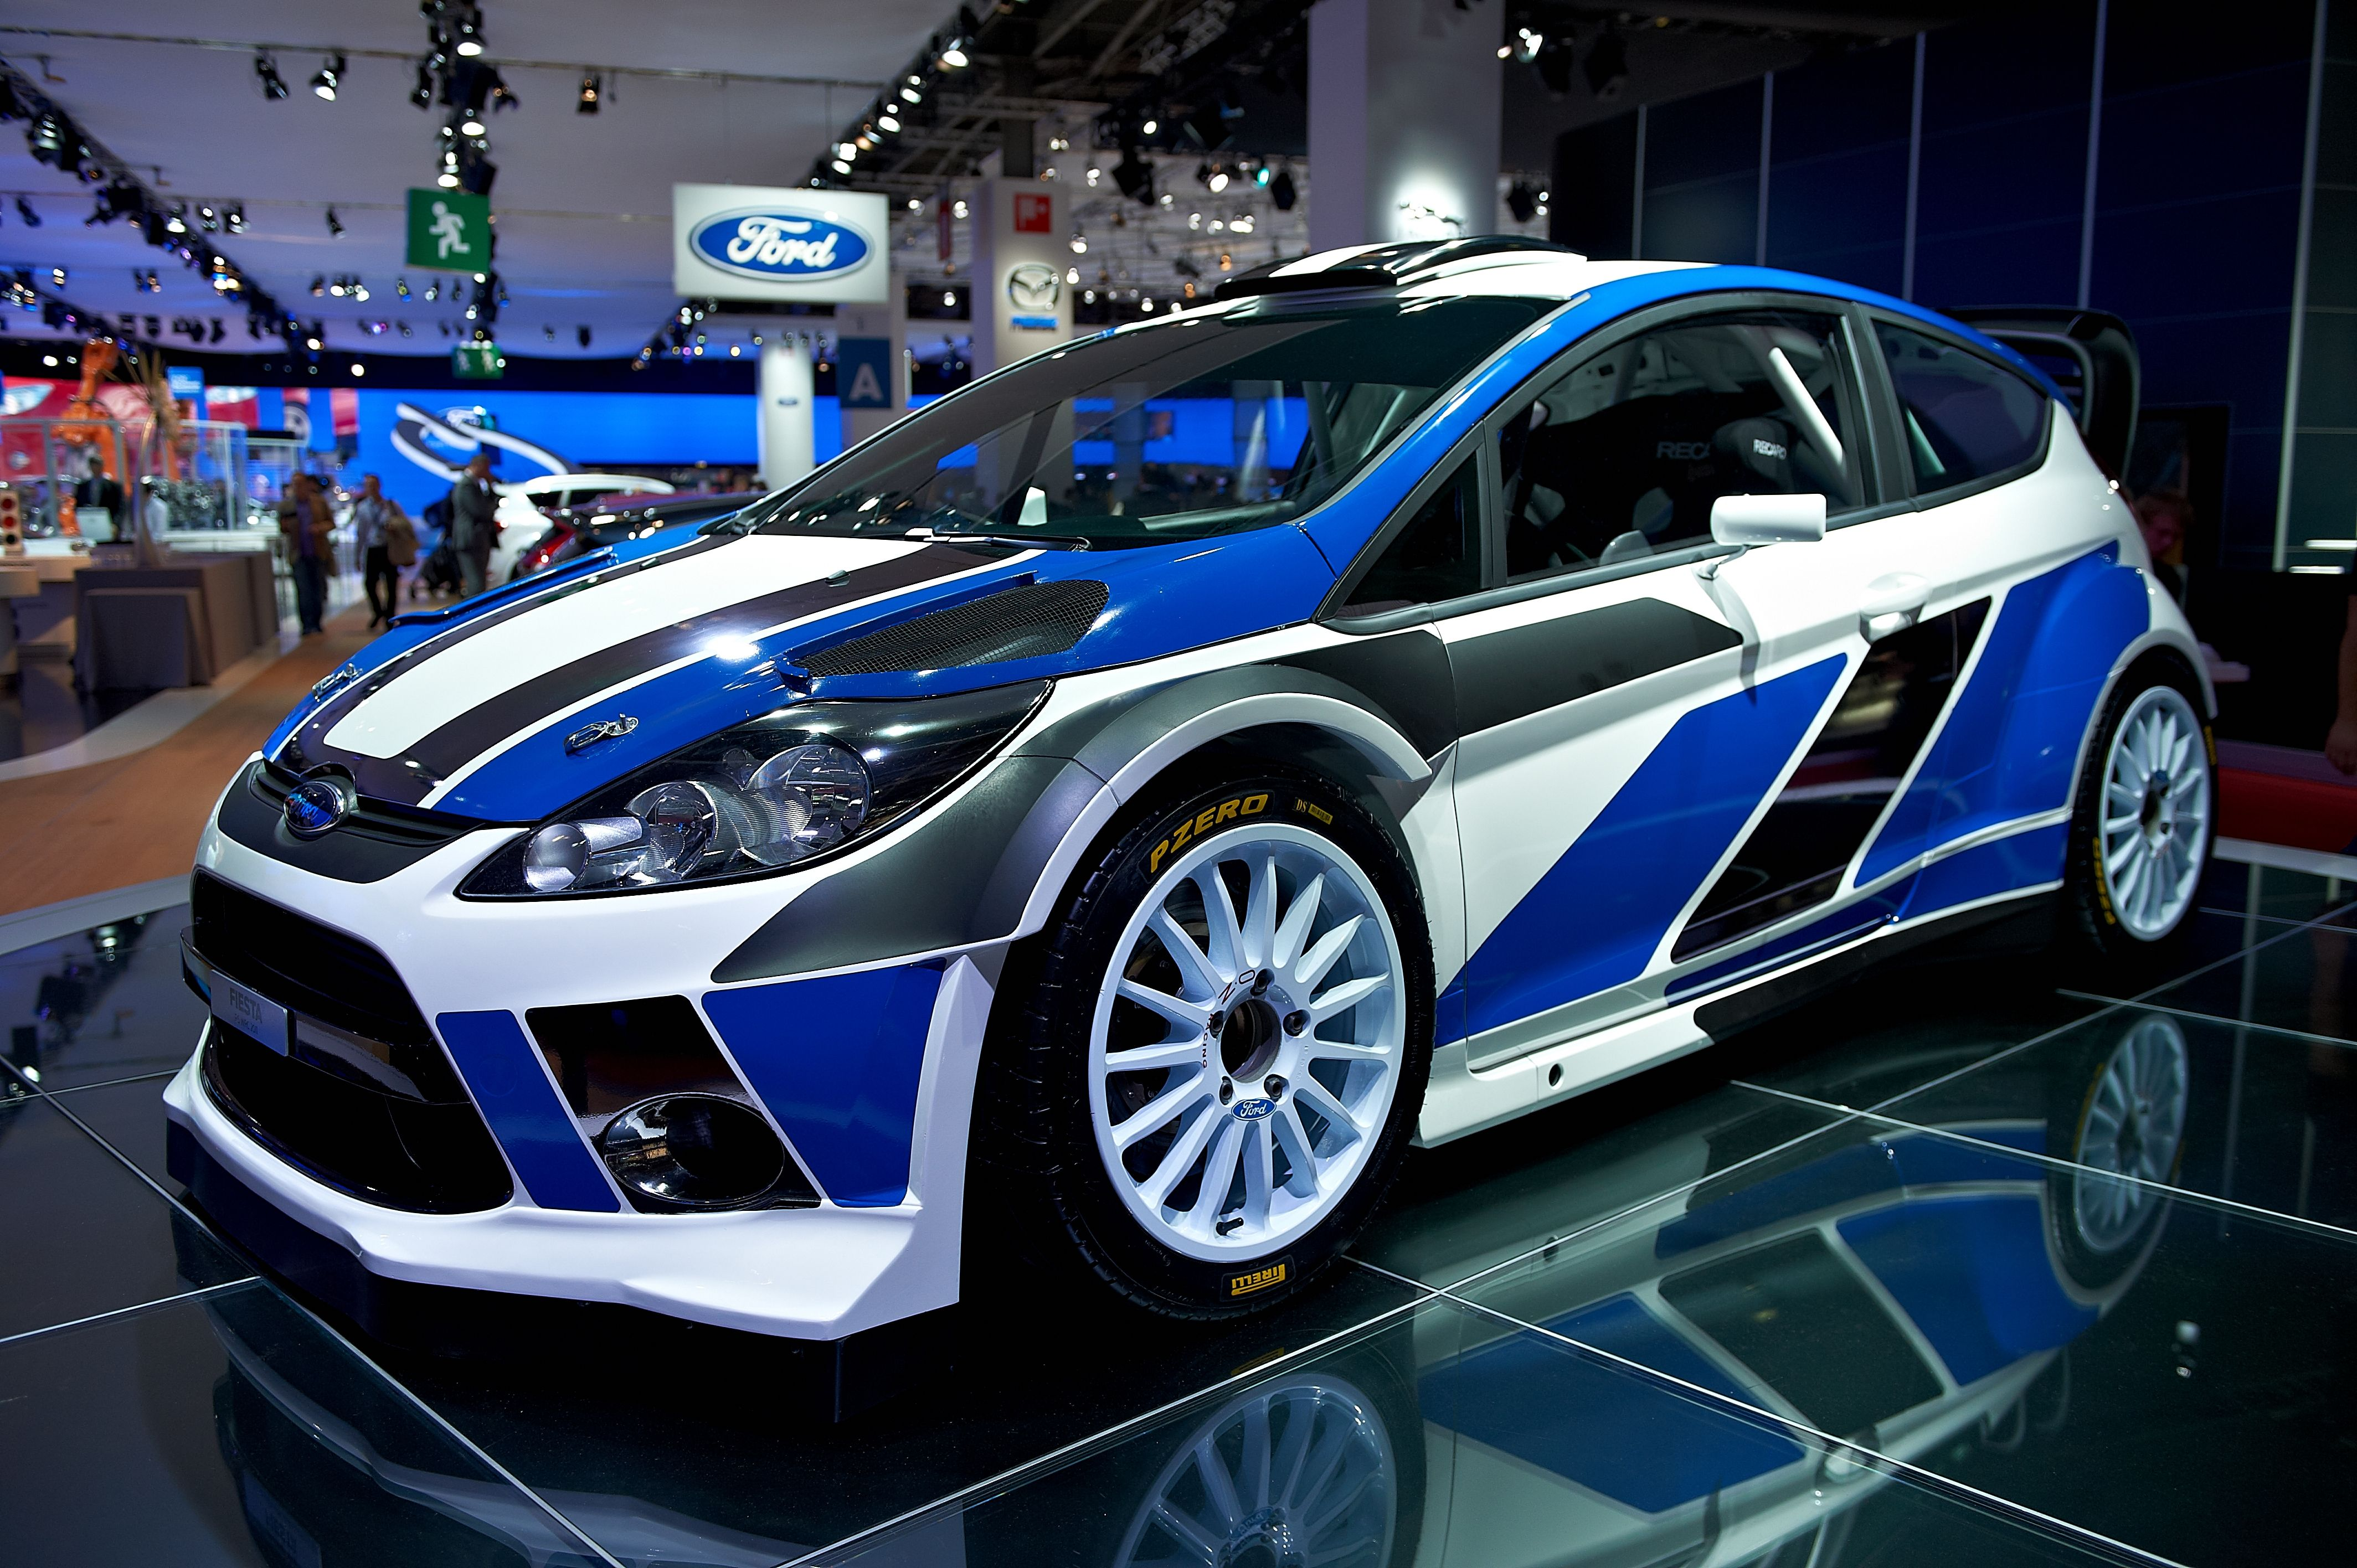 ford fiesta rs wrc ford fiesta pinterest ford and cars. Black Bedroom Furniture Sets. Home Design Ideas